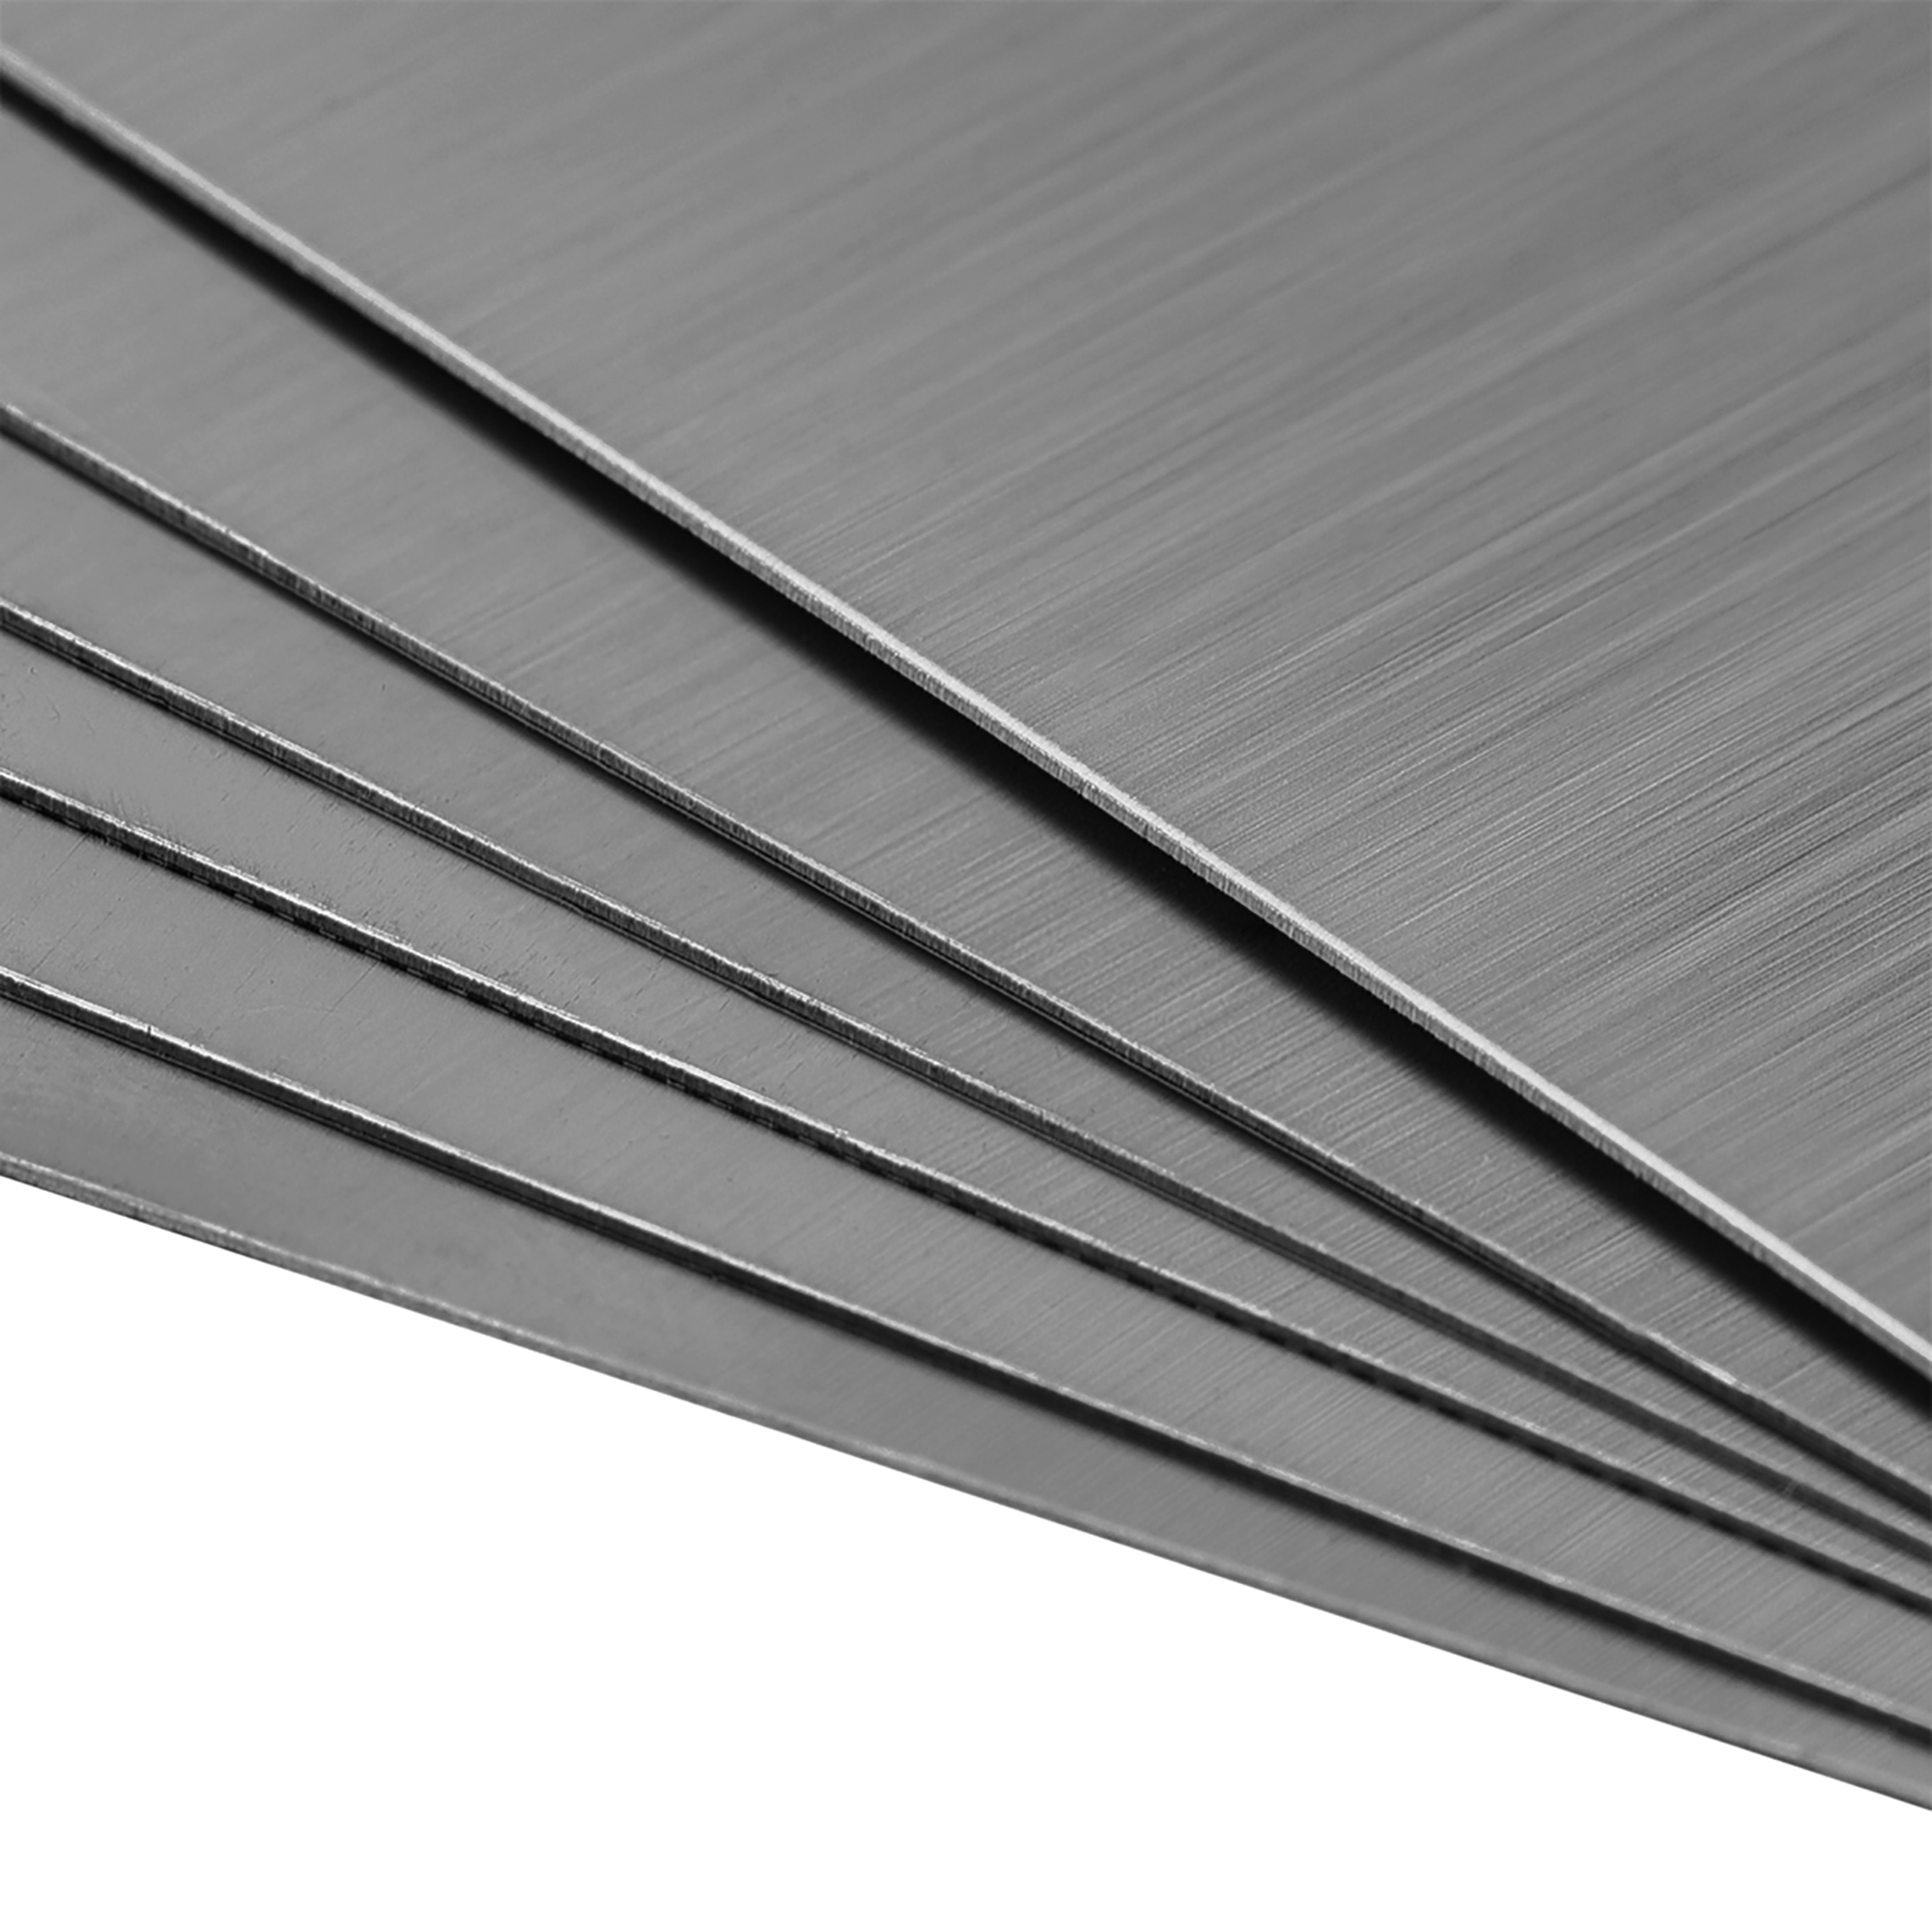 uxcell Blank Metal Business Card 80x40x0.4mm Brushed 201 Stainless Steel Plate for DIY Laser Printing Engraving Dark Gray 10 Pcs